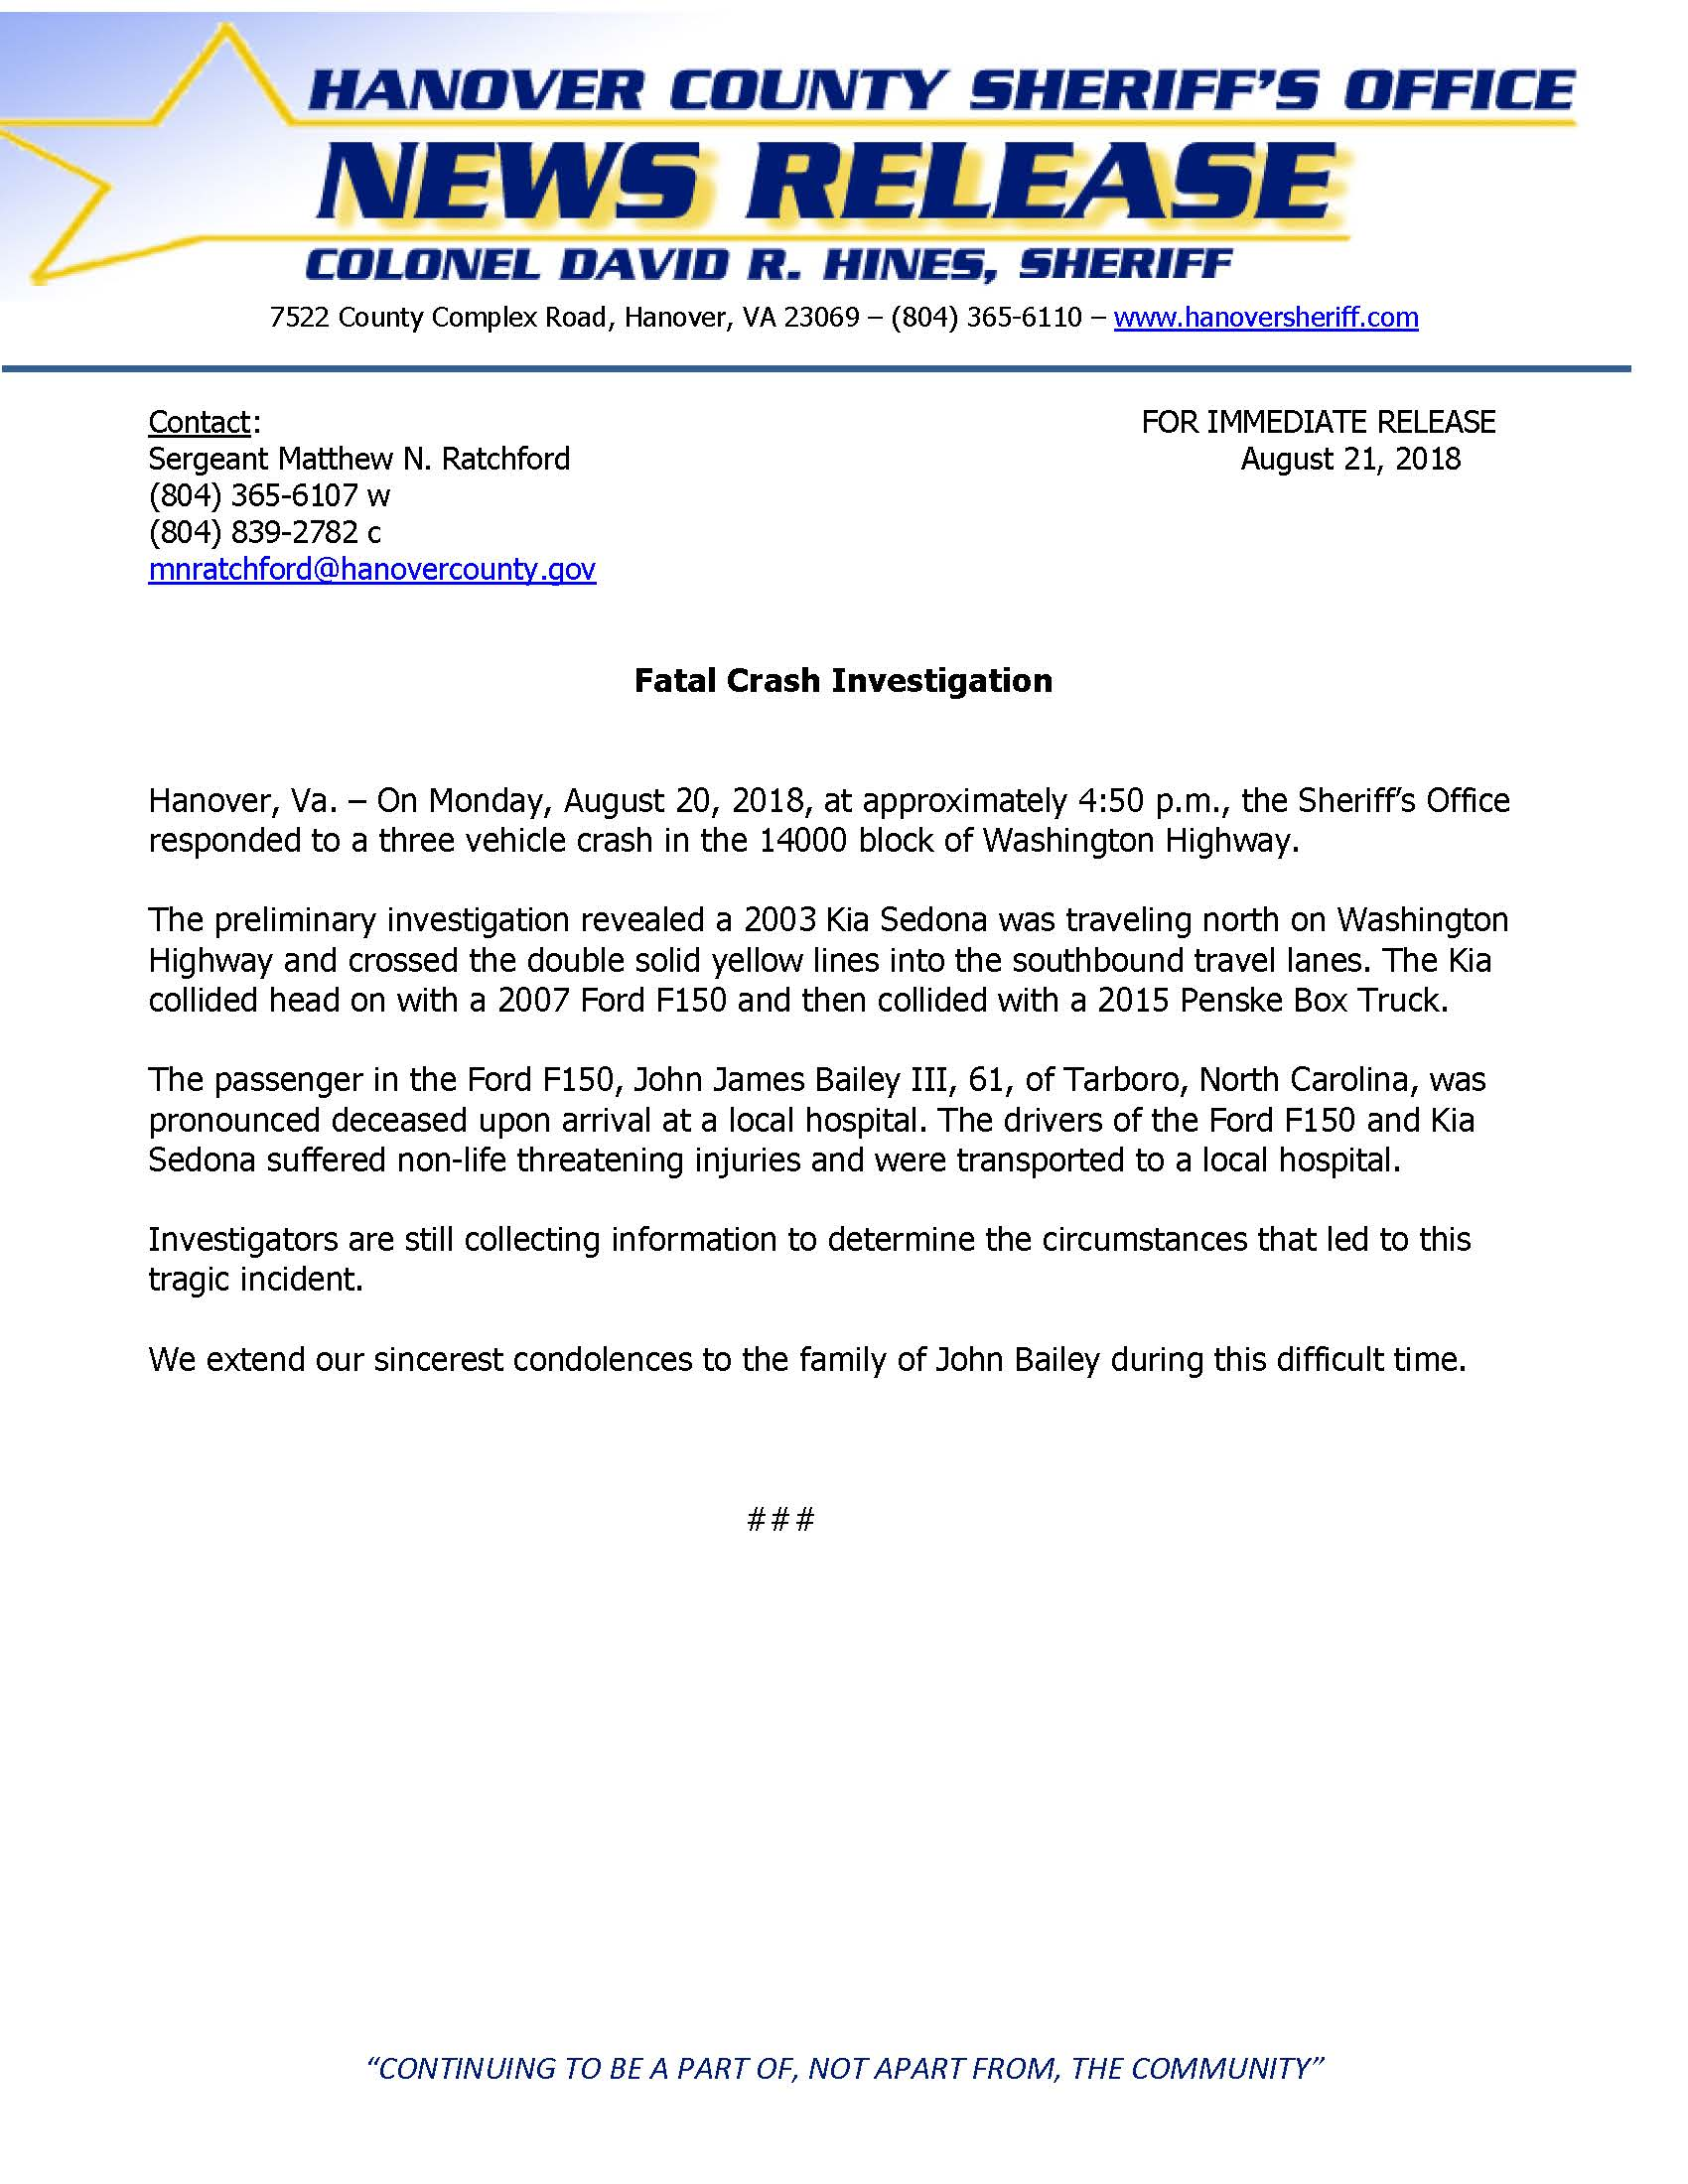 HCSO - Fatal Crash - Washington Highway- August 20, 2018